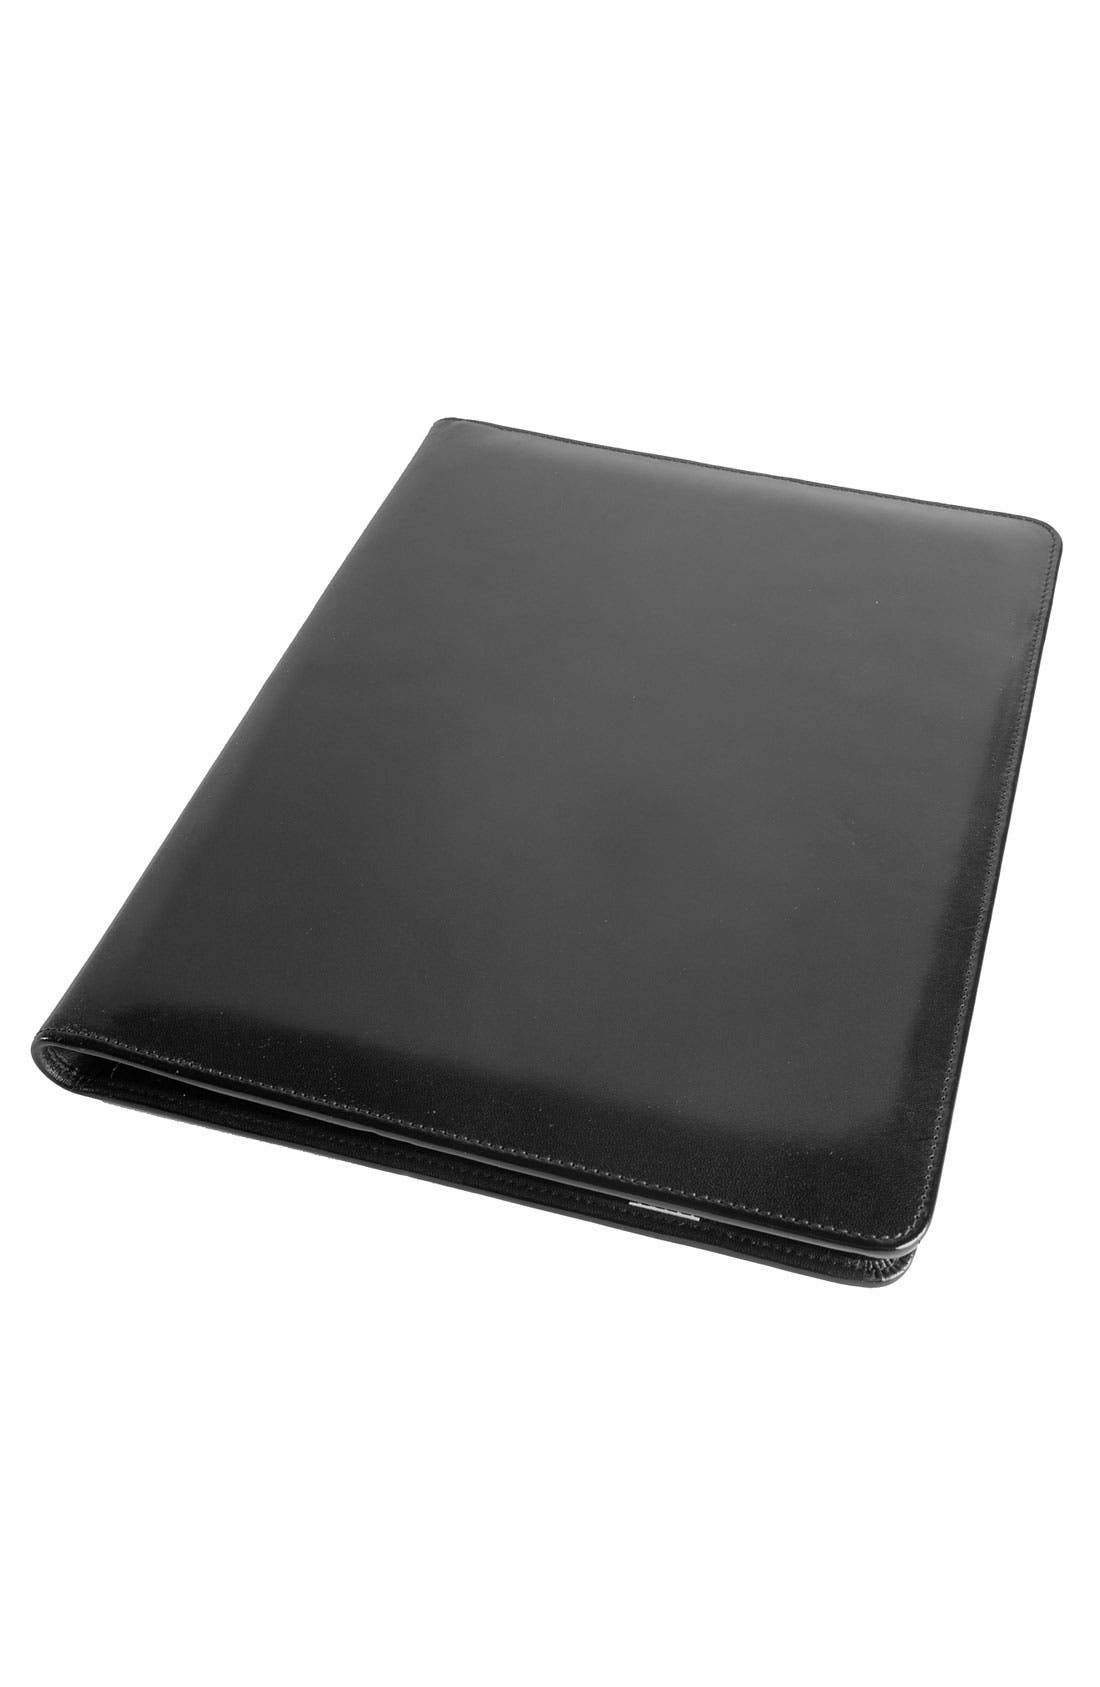 Alternate Image 1 Selected - Bosca Leather Letter Pad Cover